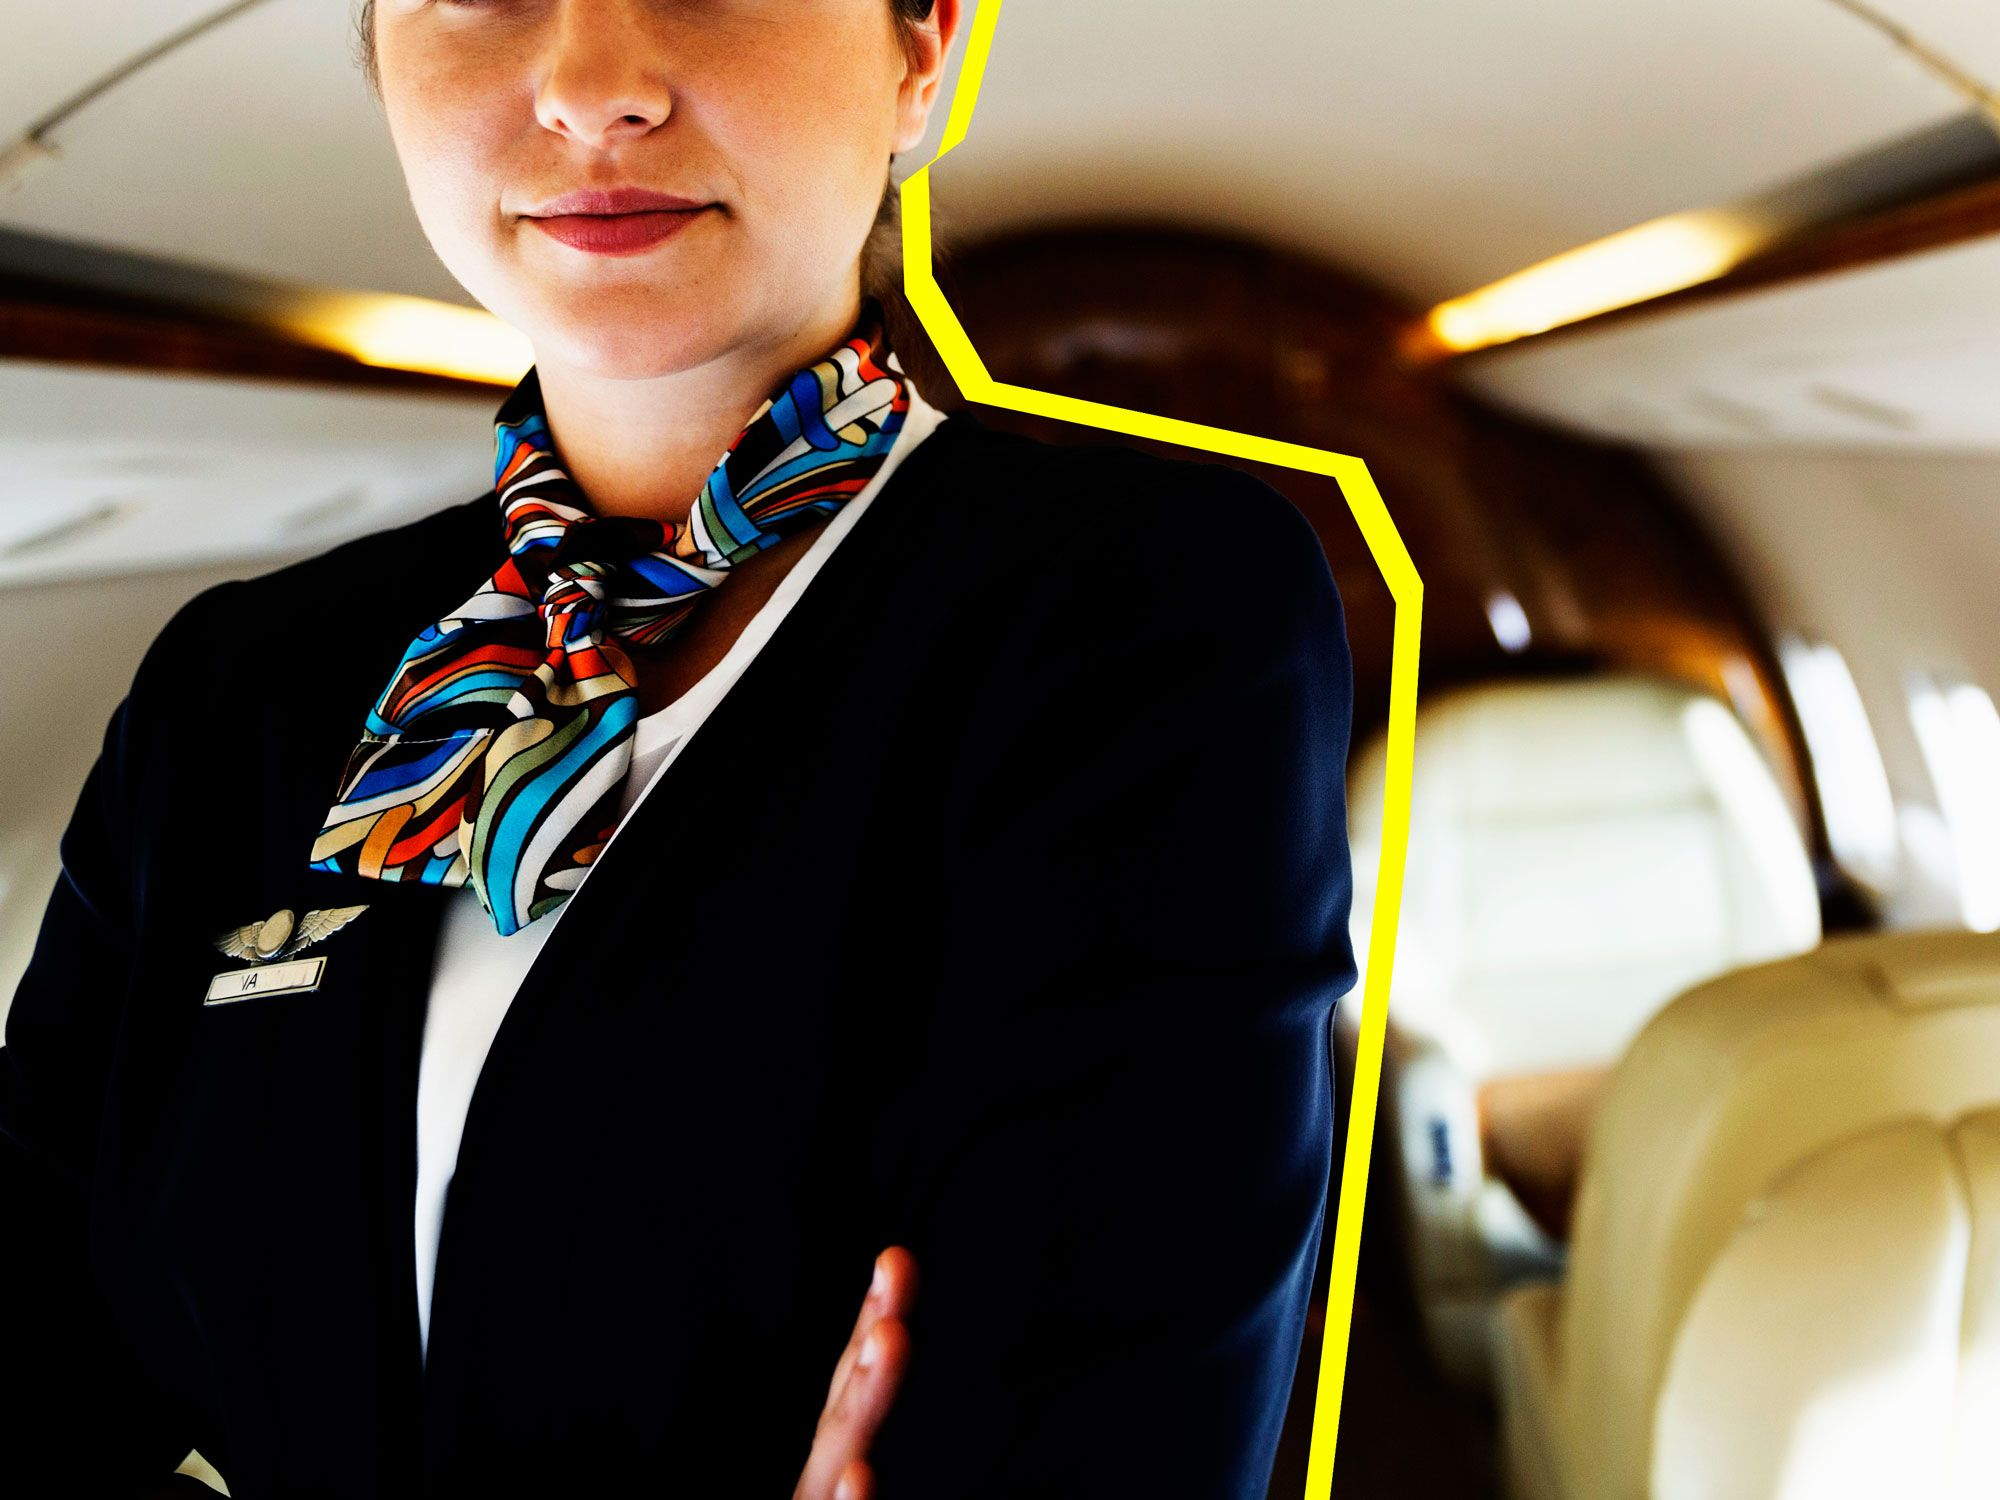 Do pilots hook up with flight attendants